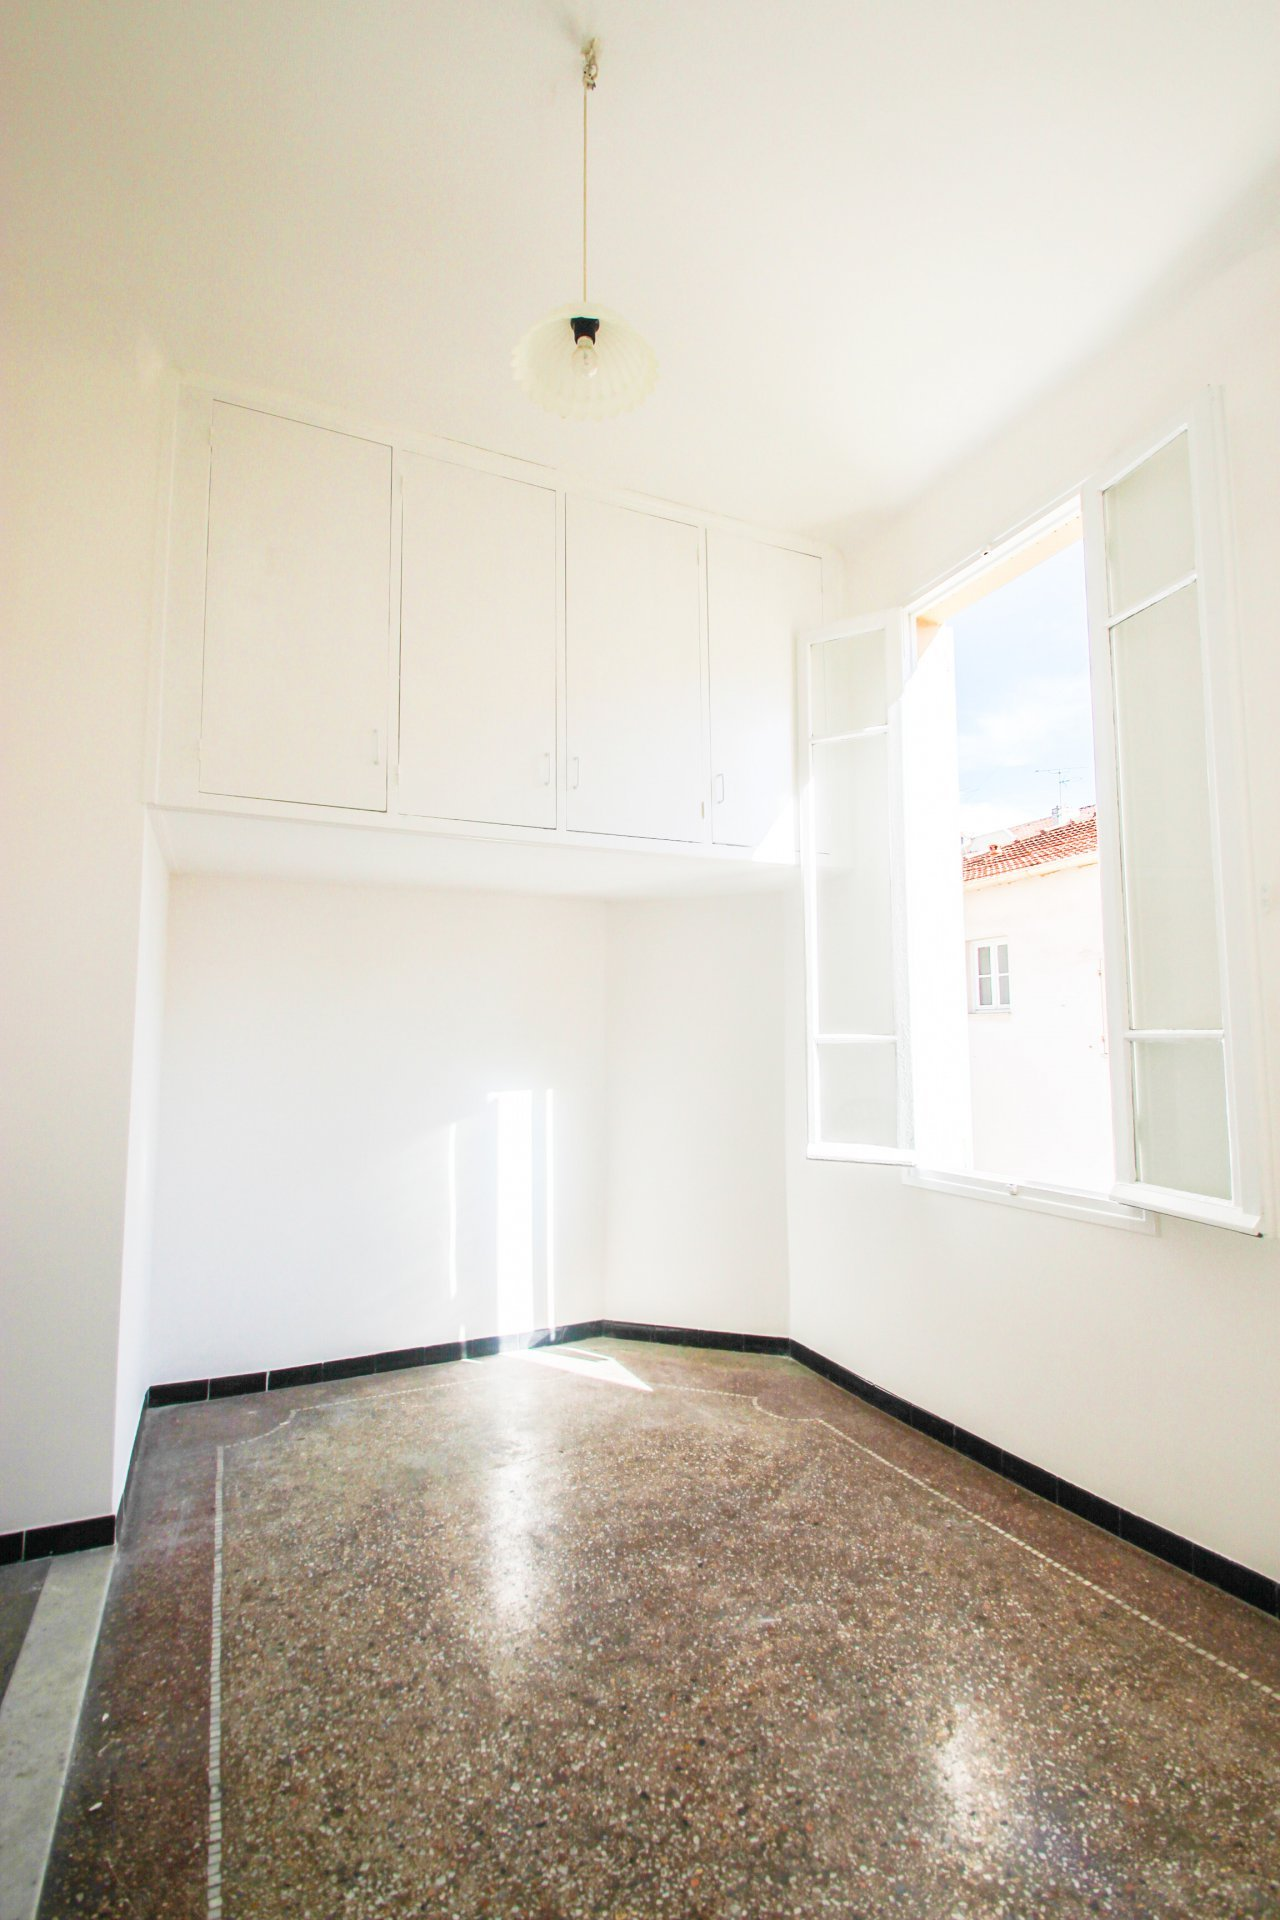 Location appartement 2 pi ces 1 chambre nice nord cyrnos nice 06000 alpes maritimes - Location 3 pieces nice nord ...